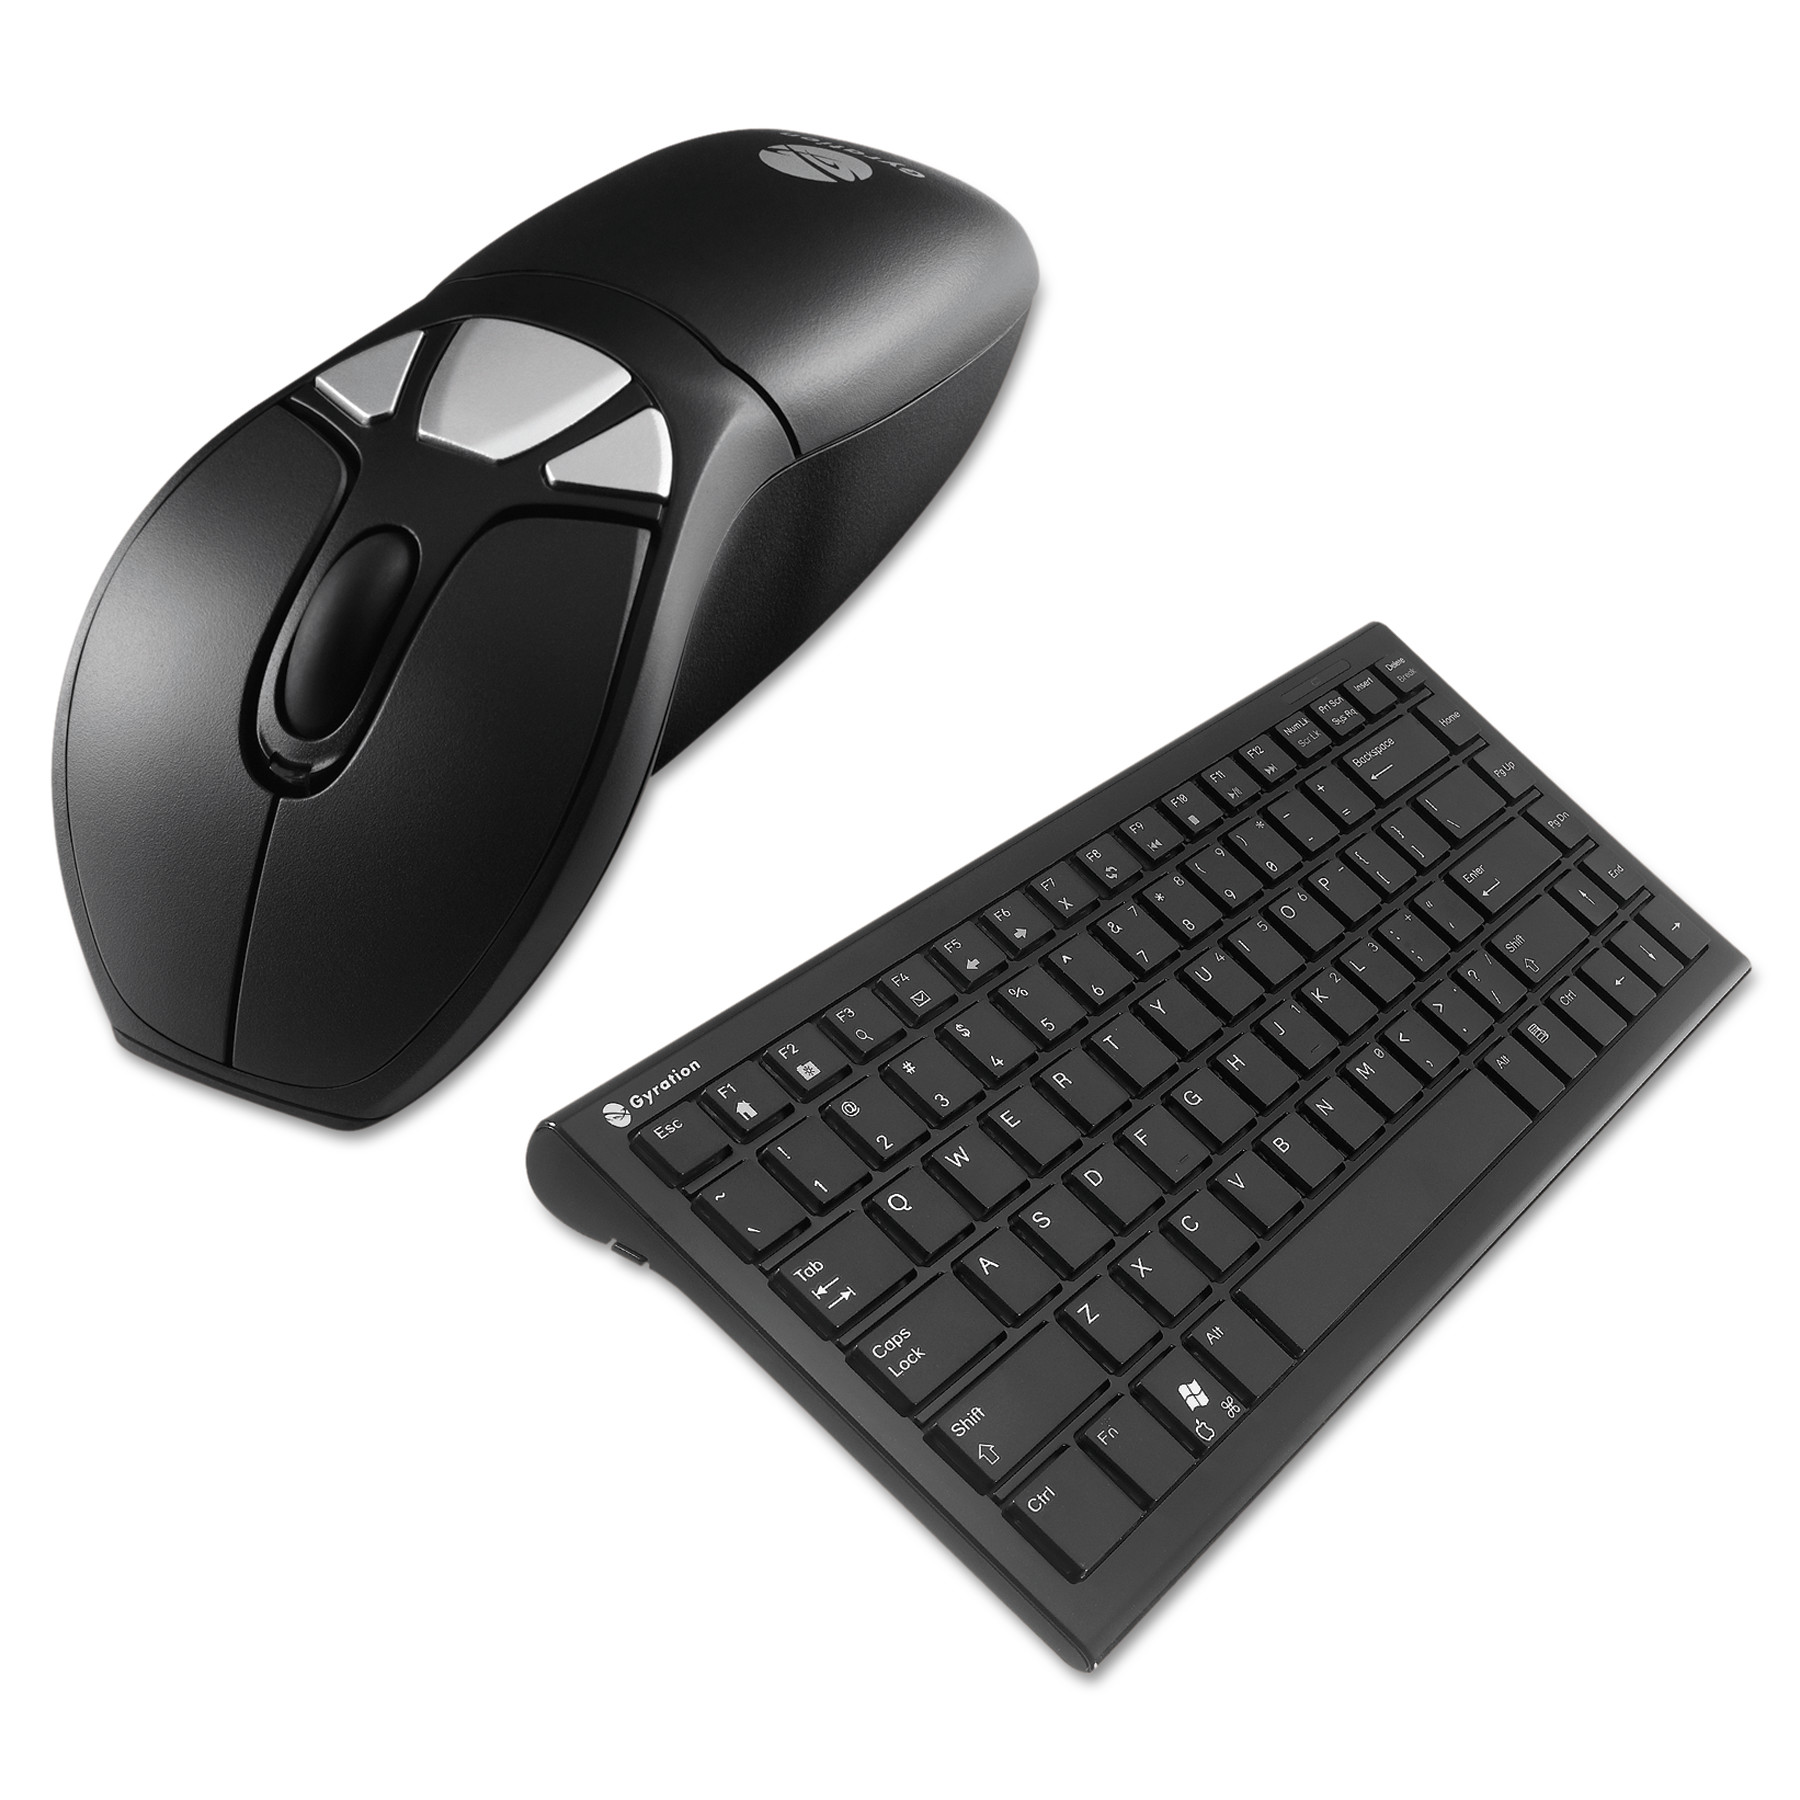 Gyration Air Mouse GO Plus Combo with Compact Keyboard, USB, Black/Silver